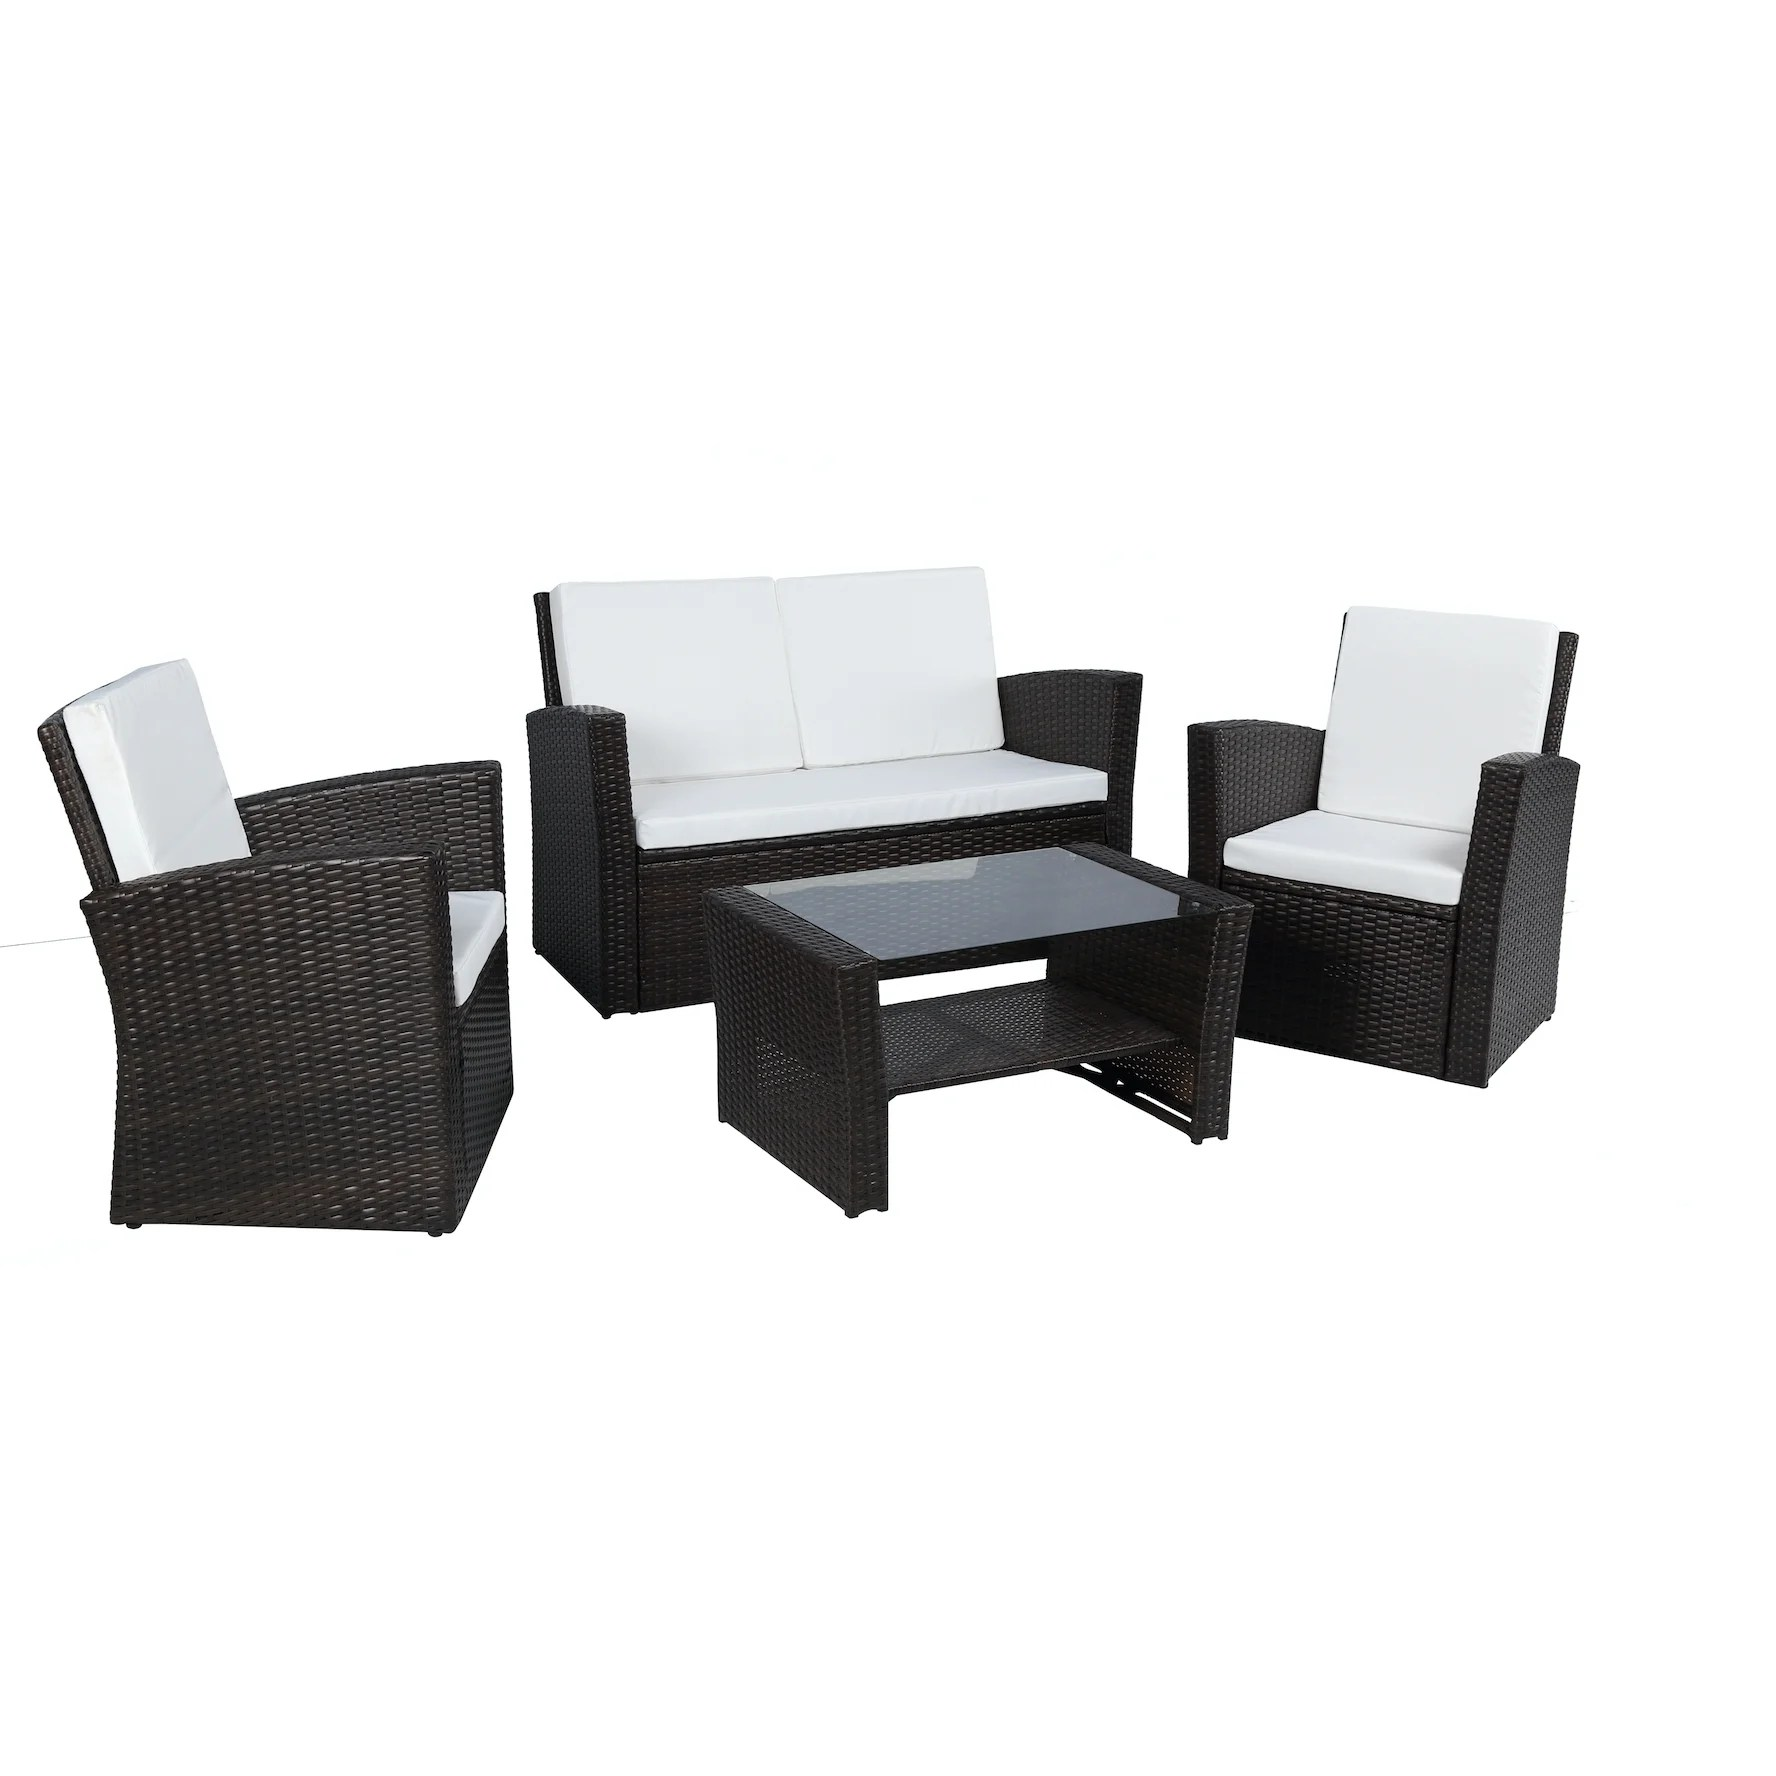 rattan garden chairs and table pub shop baner outdoor furniture complete patio 4 pieces cushion pe wicker set black